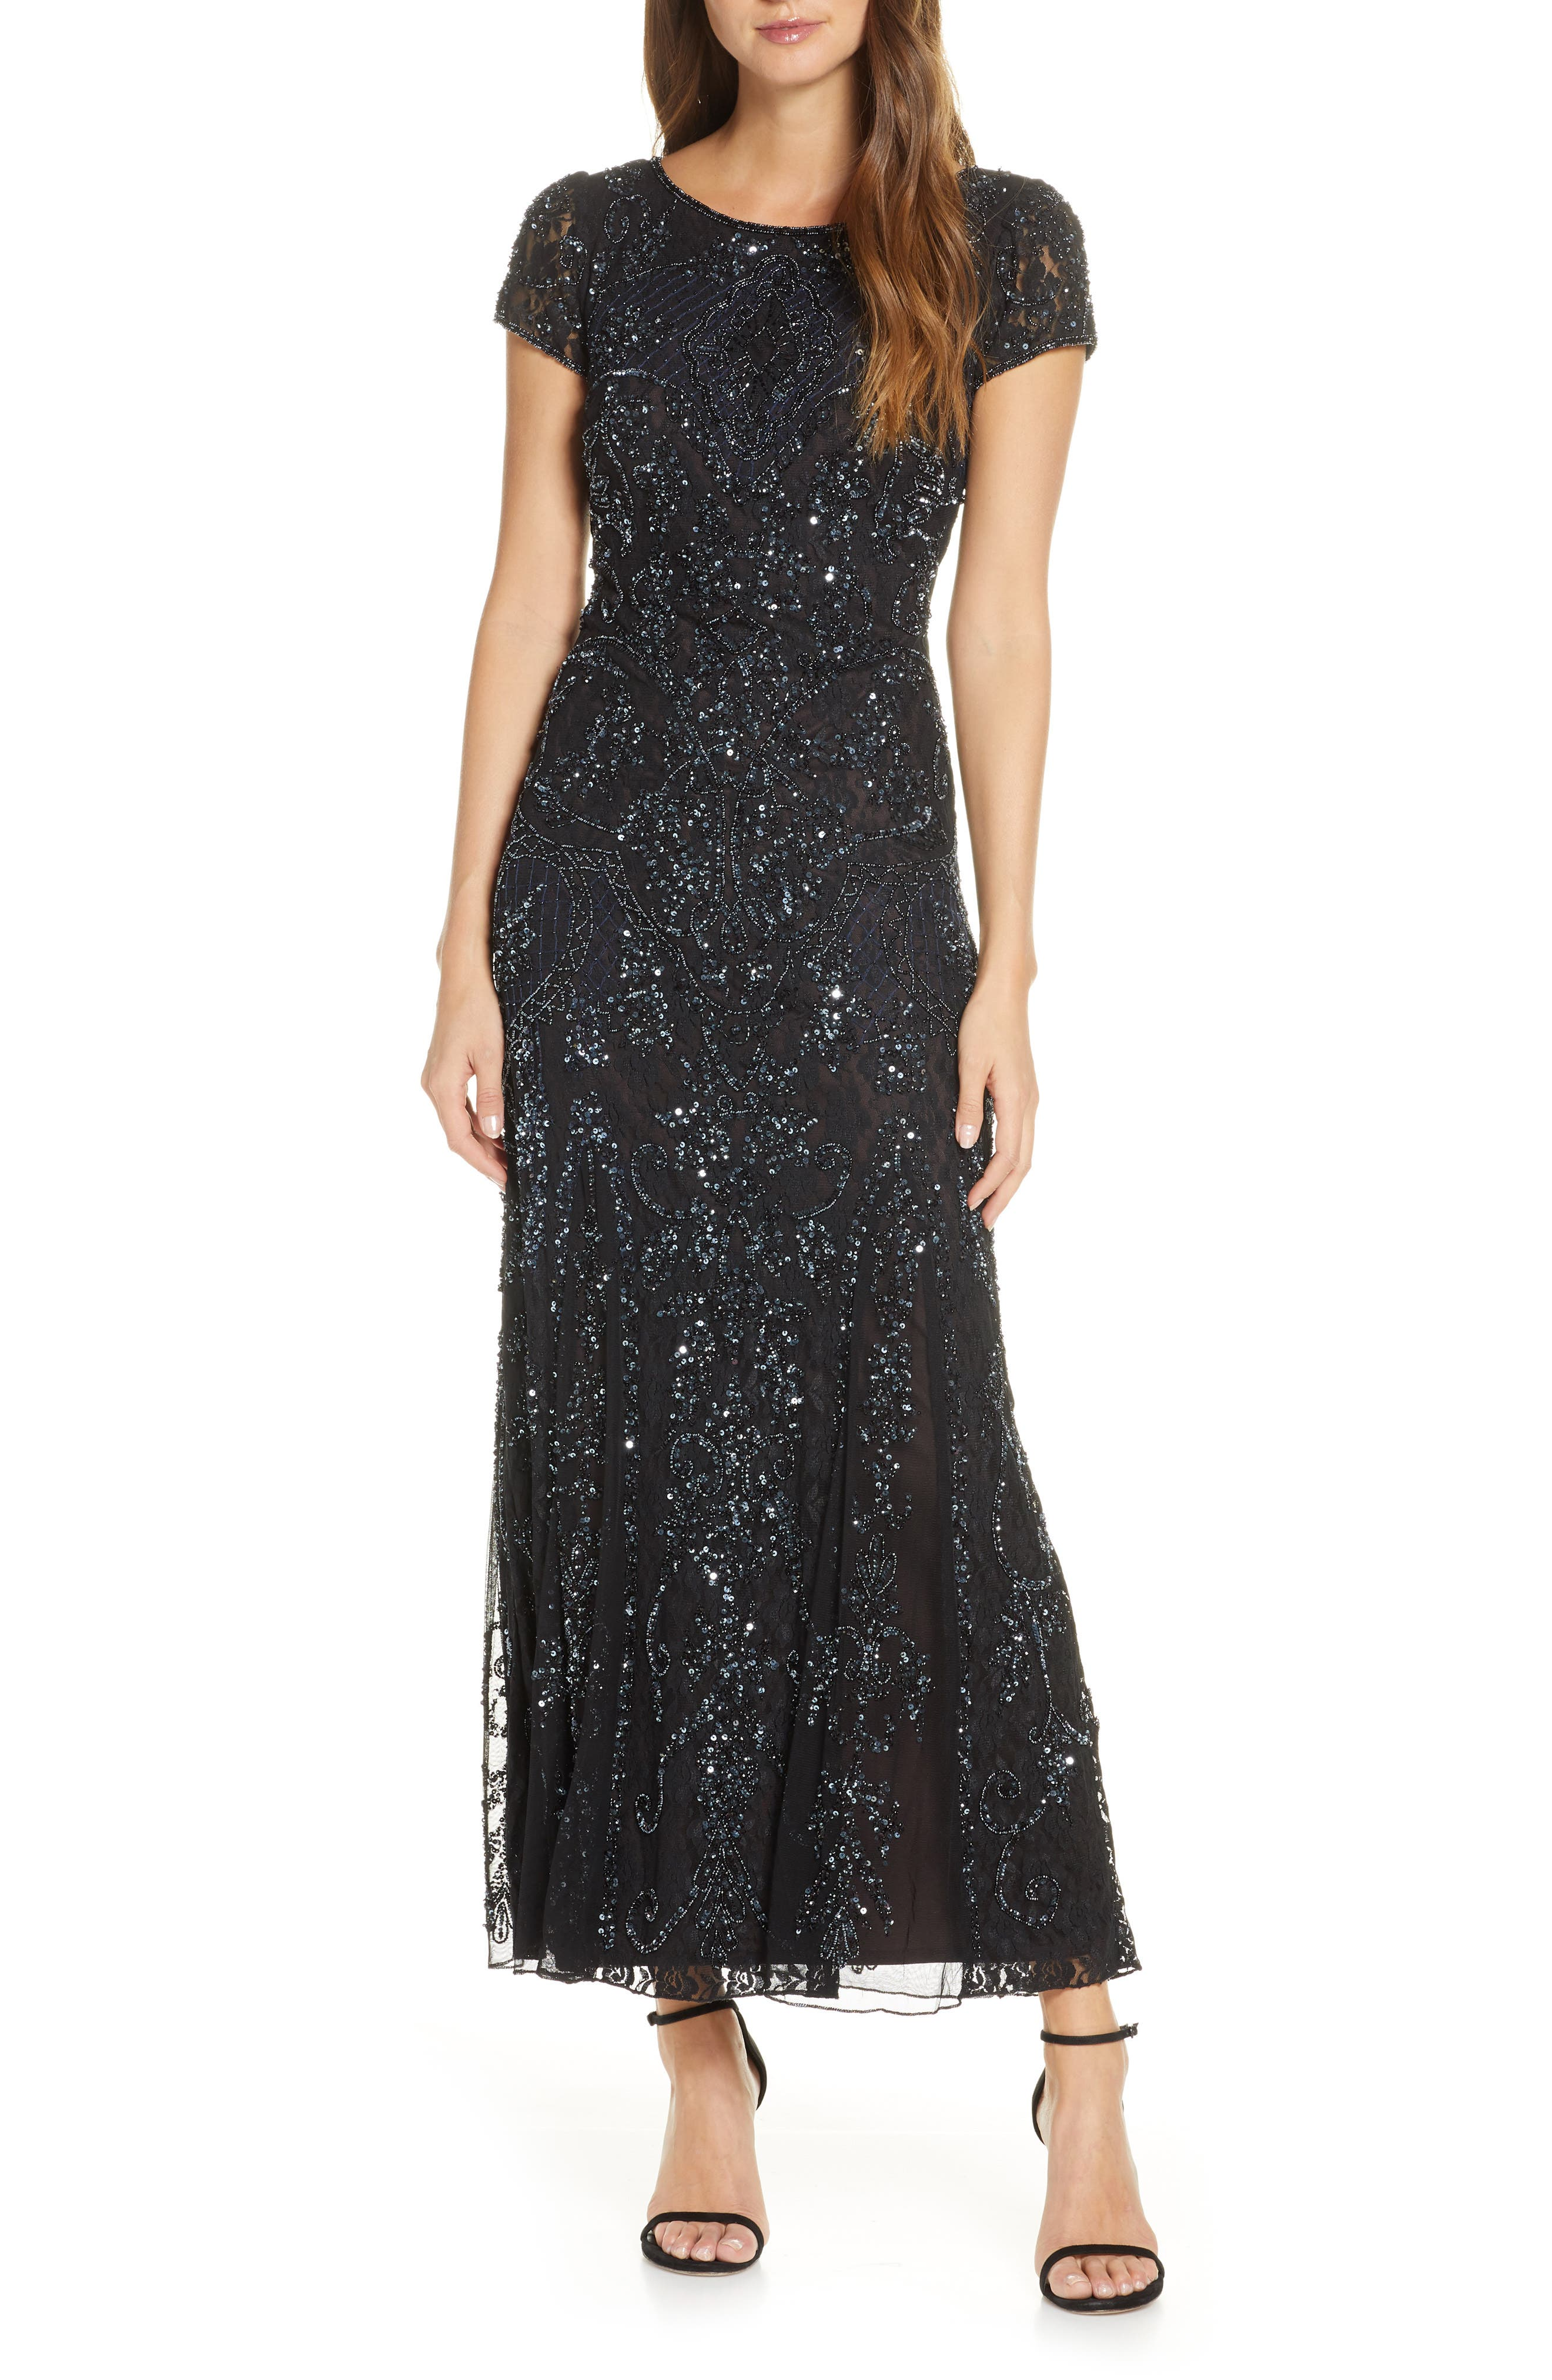 Art Deco Dresses | Art Deco Fashion, Clothing Womens Pisarro Nights Embellished Lace Gown Size 2 - Black $238.00 AT vintagedancer.com